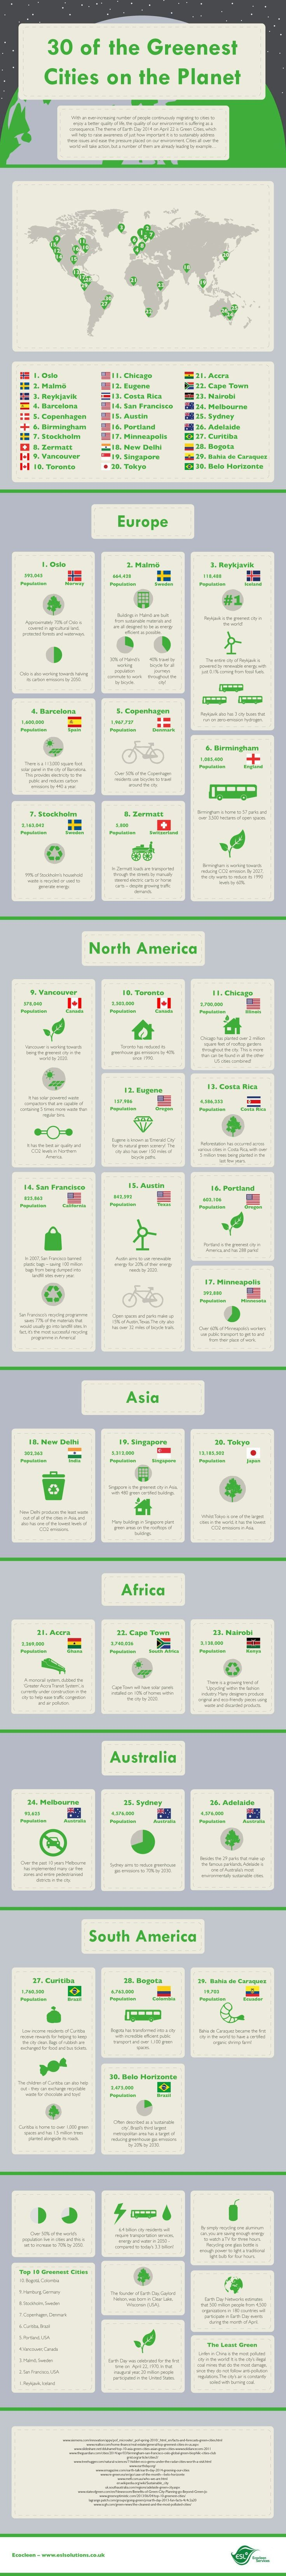 30 of the Greenest Cities on the Planet   #infographic #Environment #GreenestCities